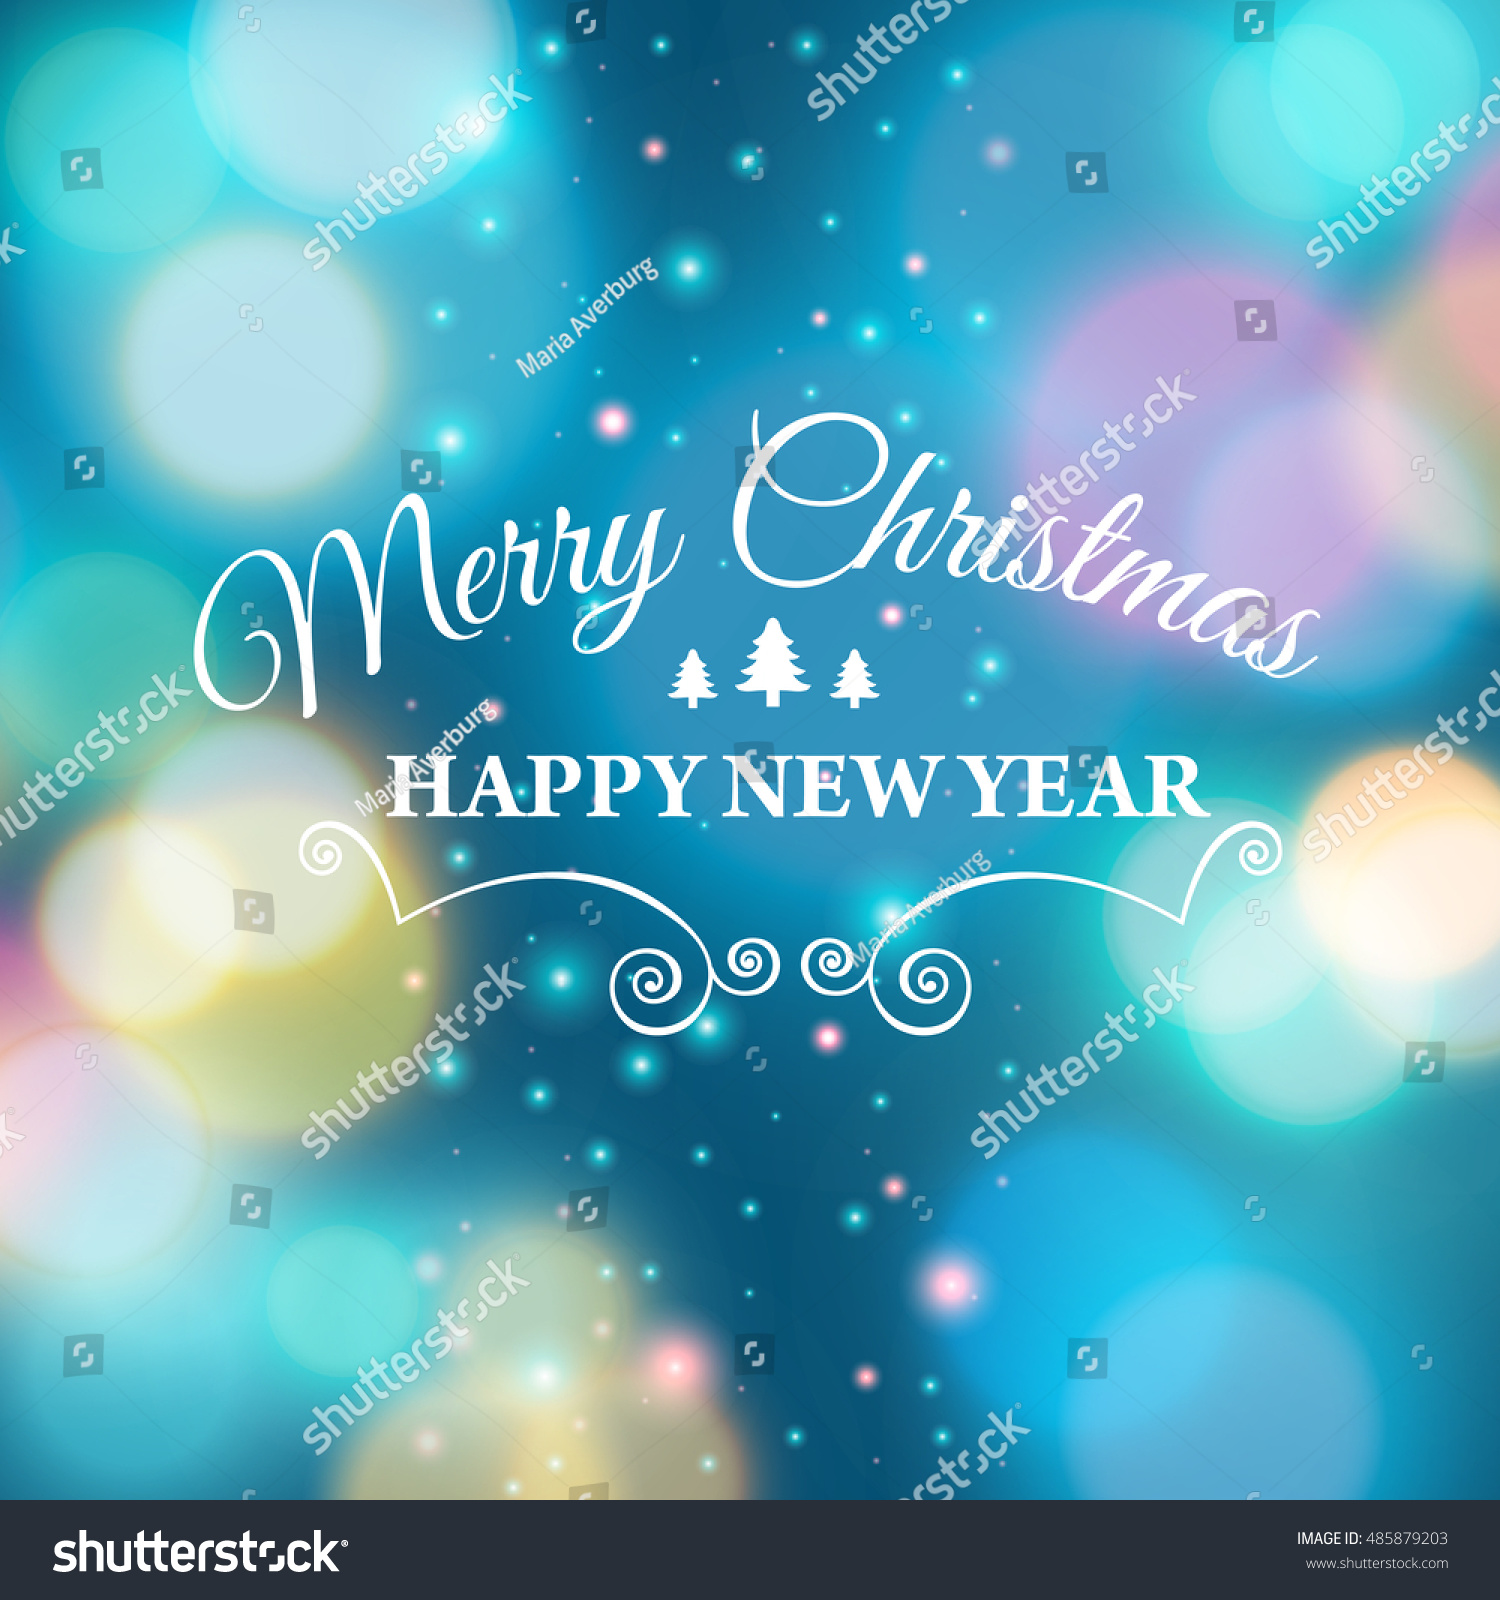 Merry christmas ecard template vector illustration stock vector hd merry christmas e card template vector illustration m4hsunfo